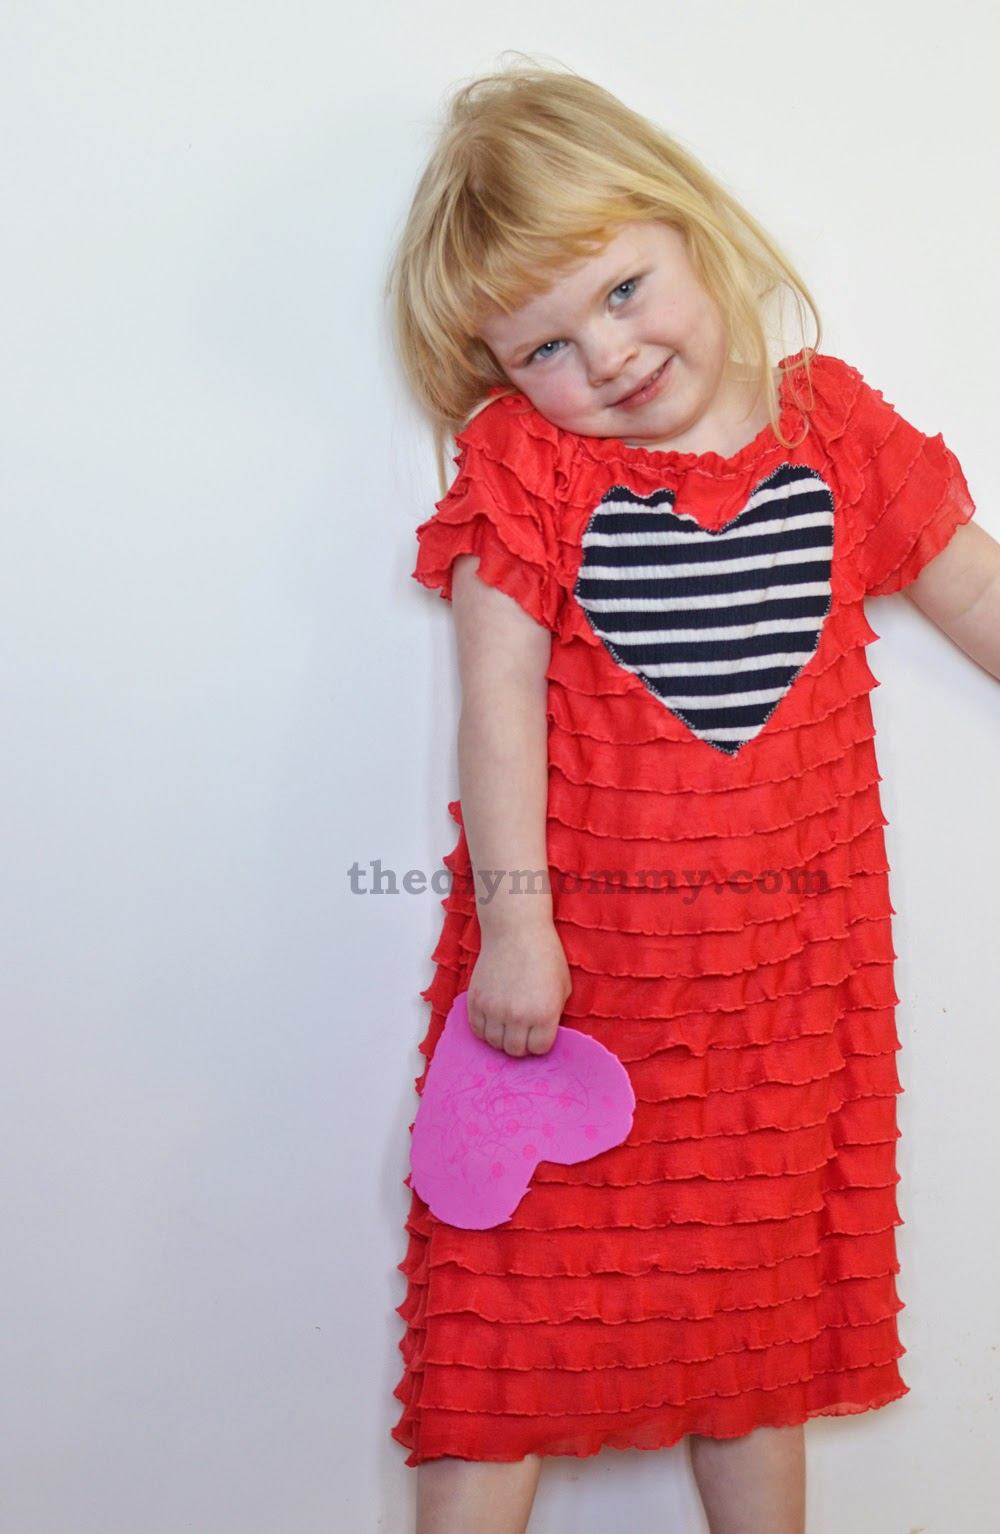 Mila Stole My Heart 10 DIY Valentine Outfit for My Toddler